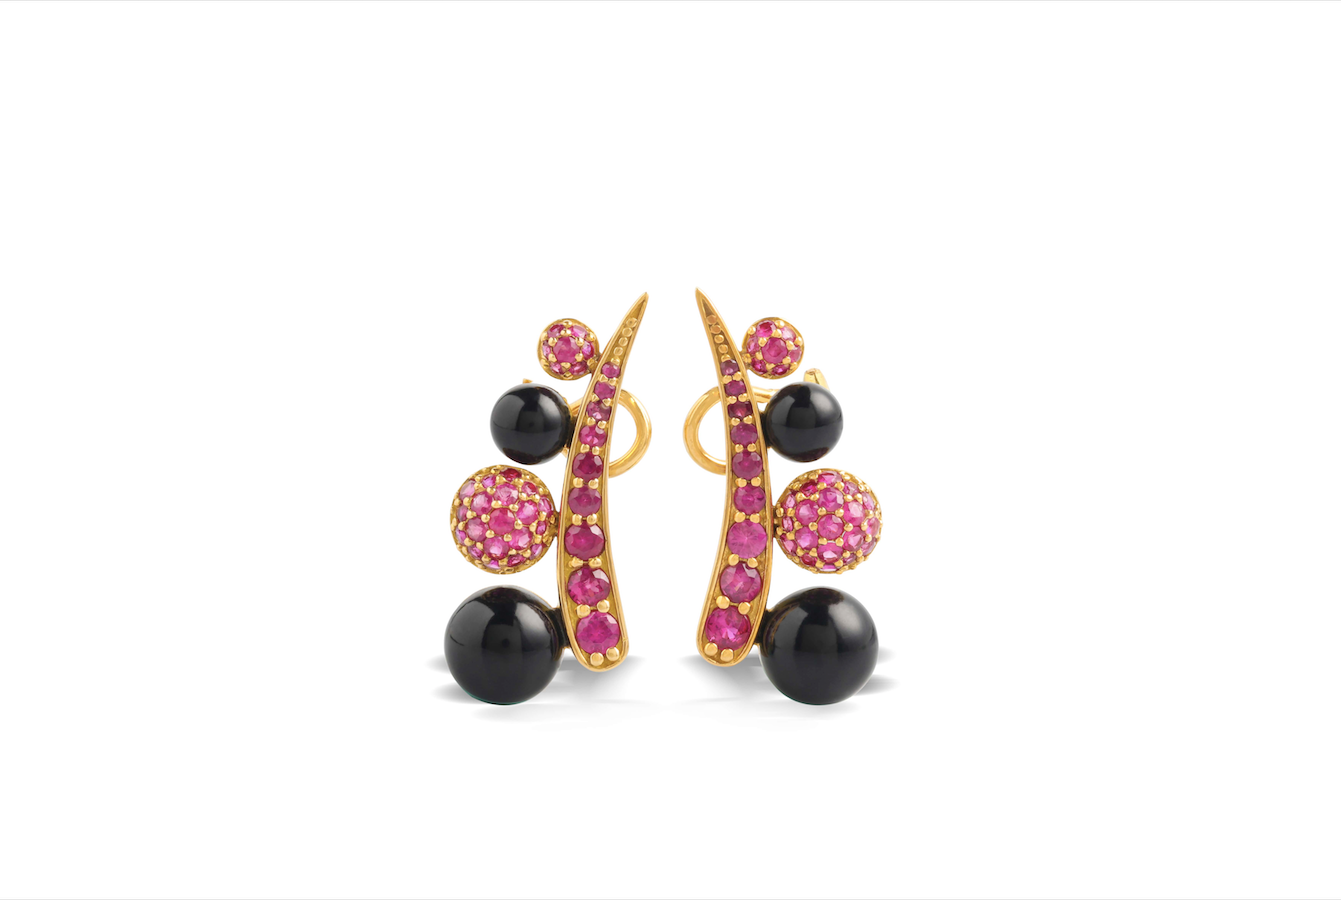 Black Corian EARRINGS in 18K YELLOW GOLD with BURMESE RUBIES